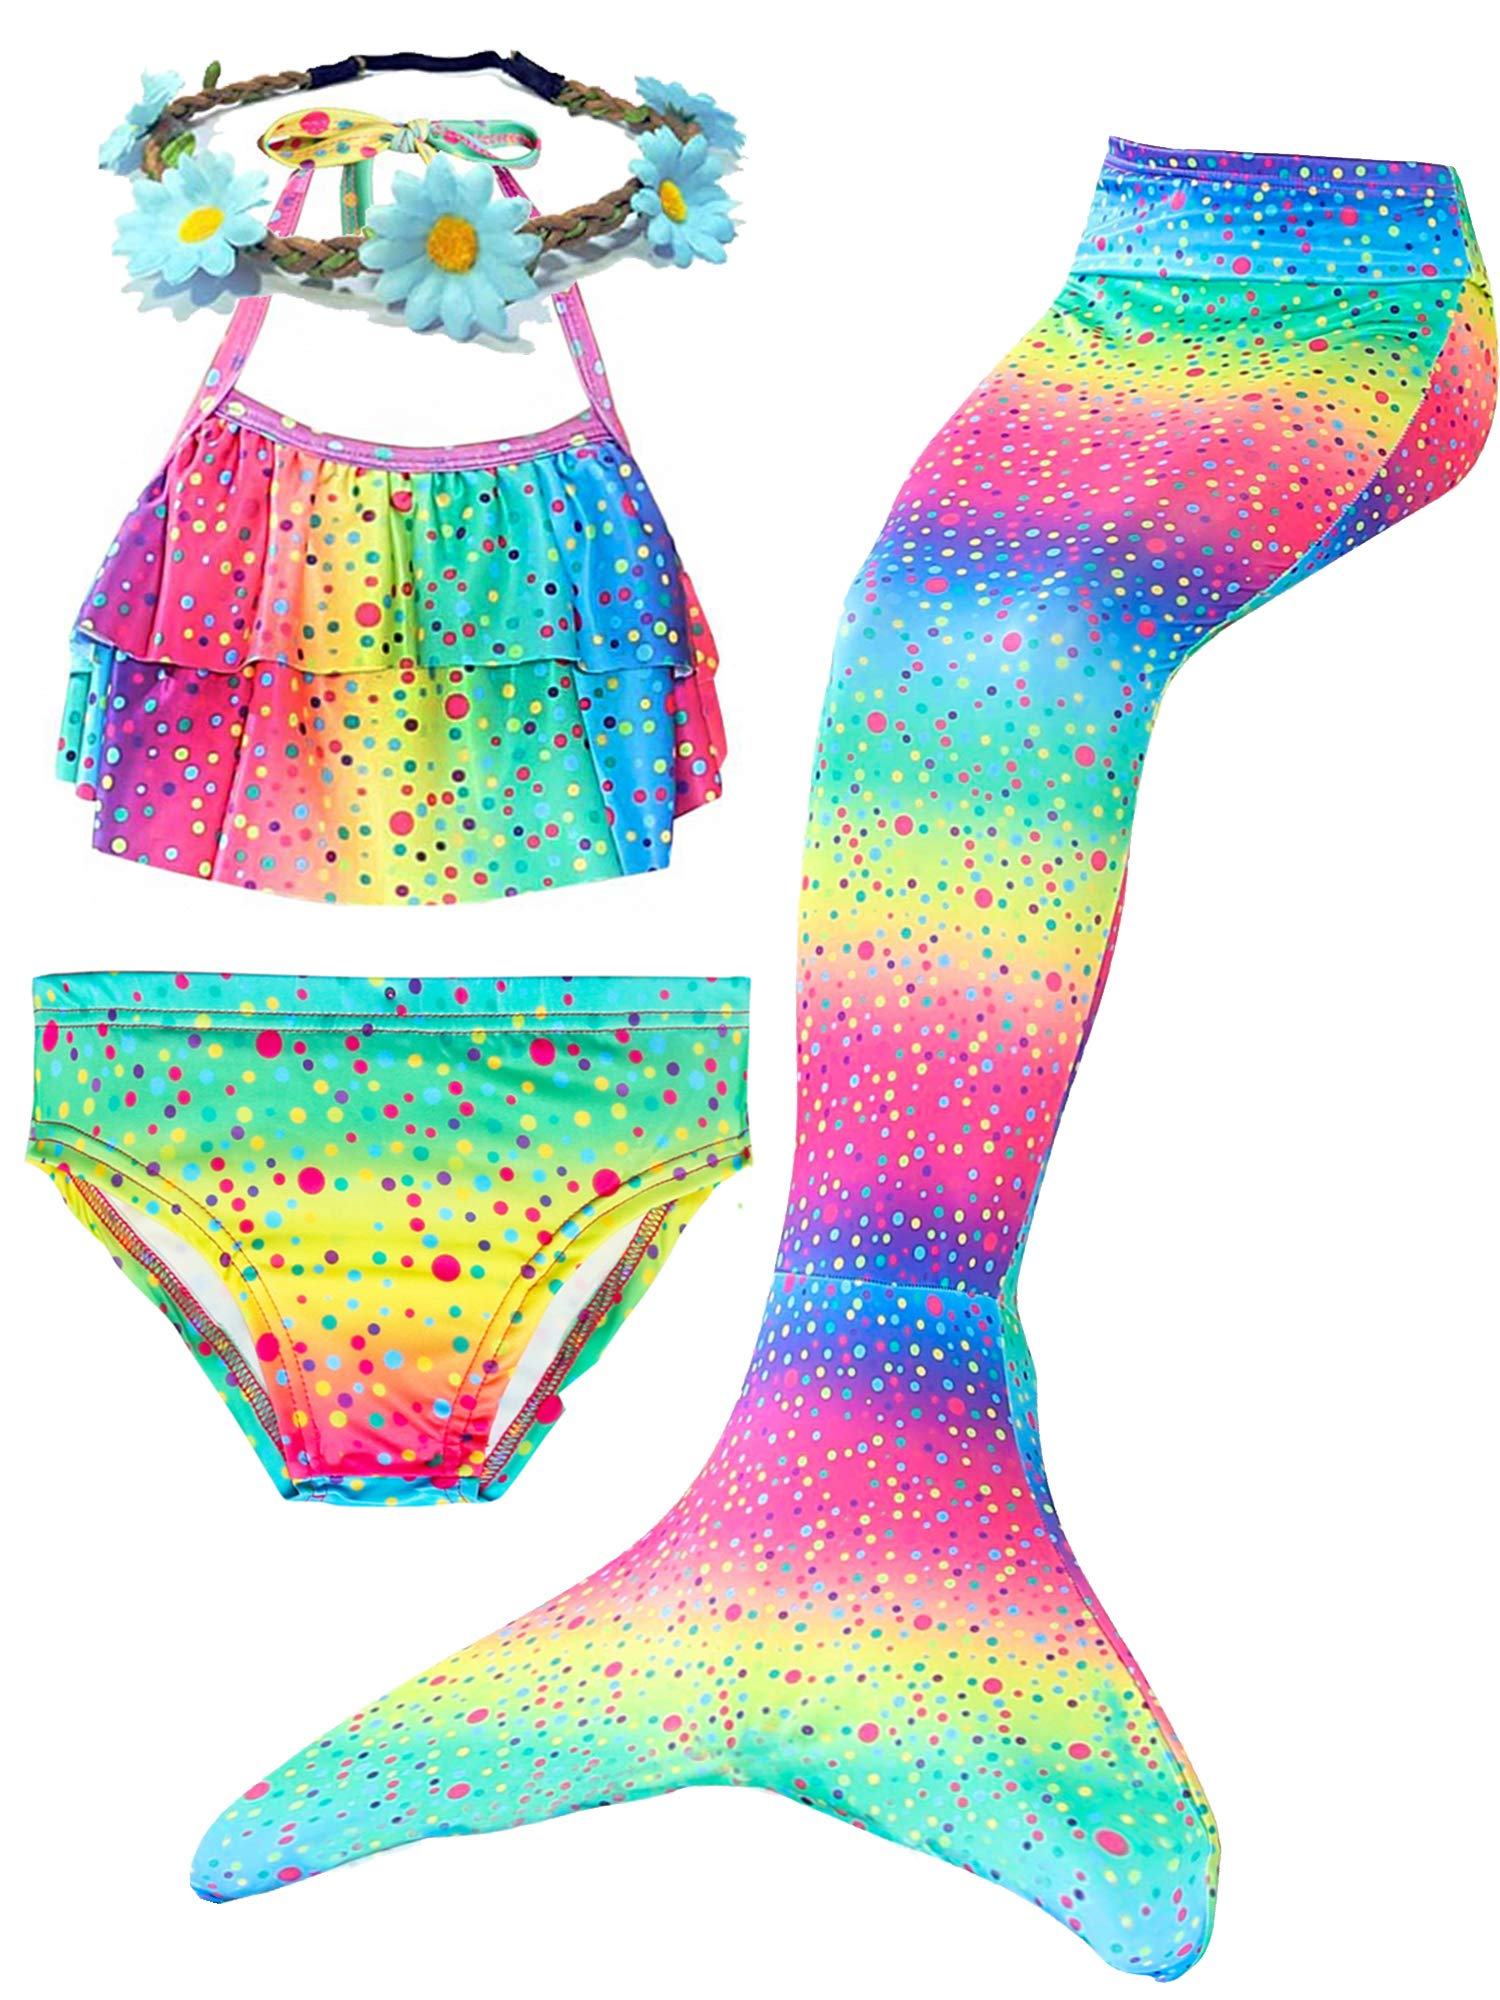 4 Pcs Baby Girls Swimsuits Mermaid for Swimming Halter Ruffled Tankini Top with Bottom Mermaid Cosplay Theme Party Favor